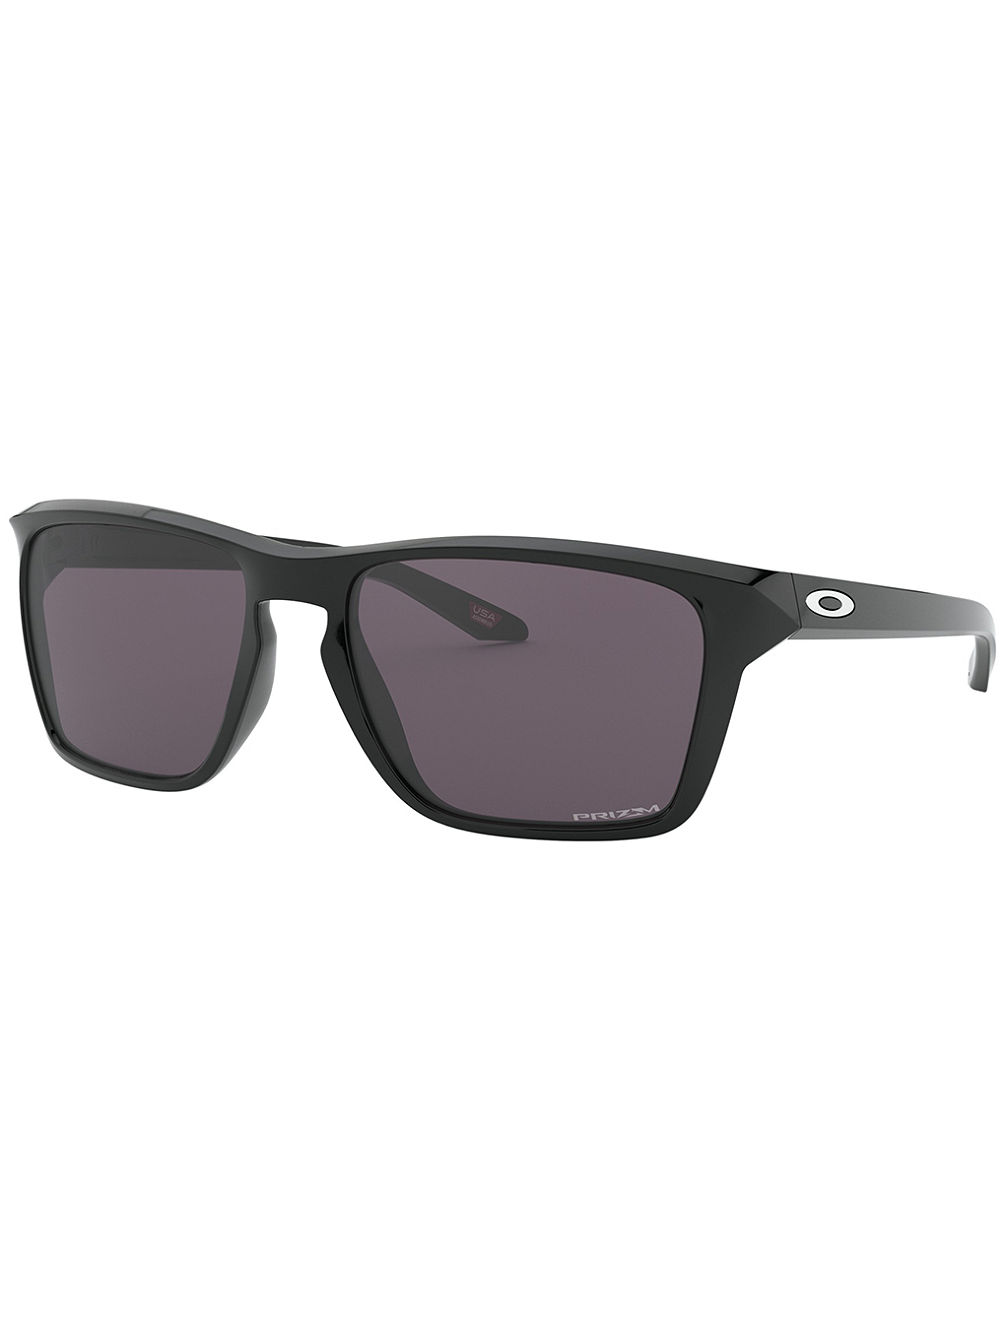 Sylas Polished Black Sonnenbrille